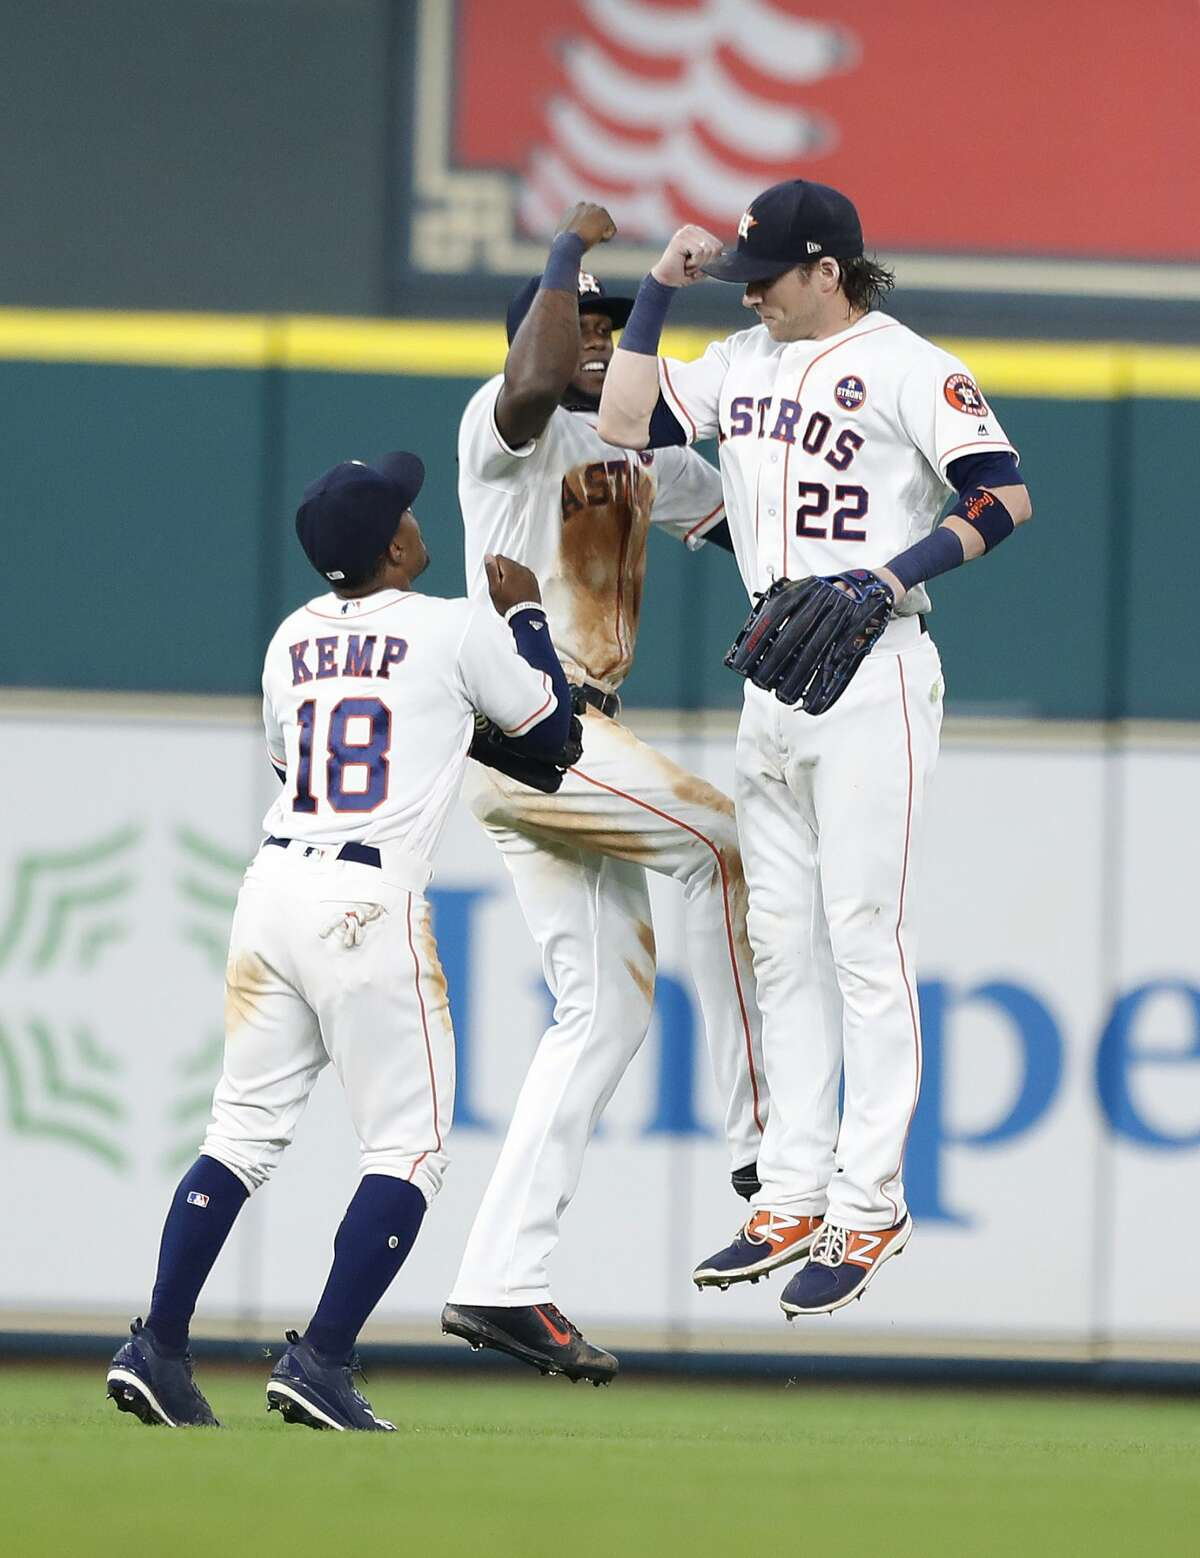 Houston Astros Tony Kemp (18), Cameron Maybin (3), and Josh Reddick (22)try to coordinate their celebration as the Astros win 12-8 over the Mets after game one of their doubleheader during an MLB baseball game at Minute Maid Park, Saturday, Sept. 2, 2017, in Houston. This is the first professional sporting event in the city since Tropical Storm Harvey. ( Karen Warren / Houston Chronicle )